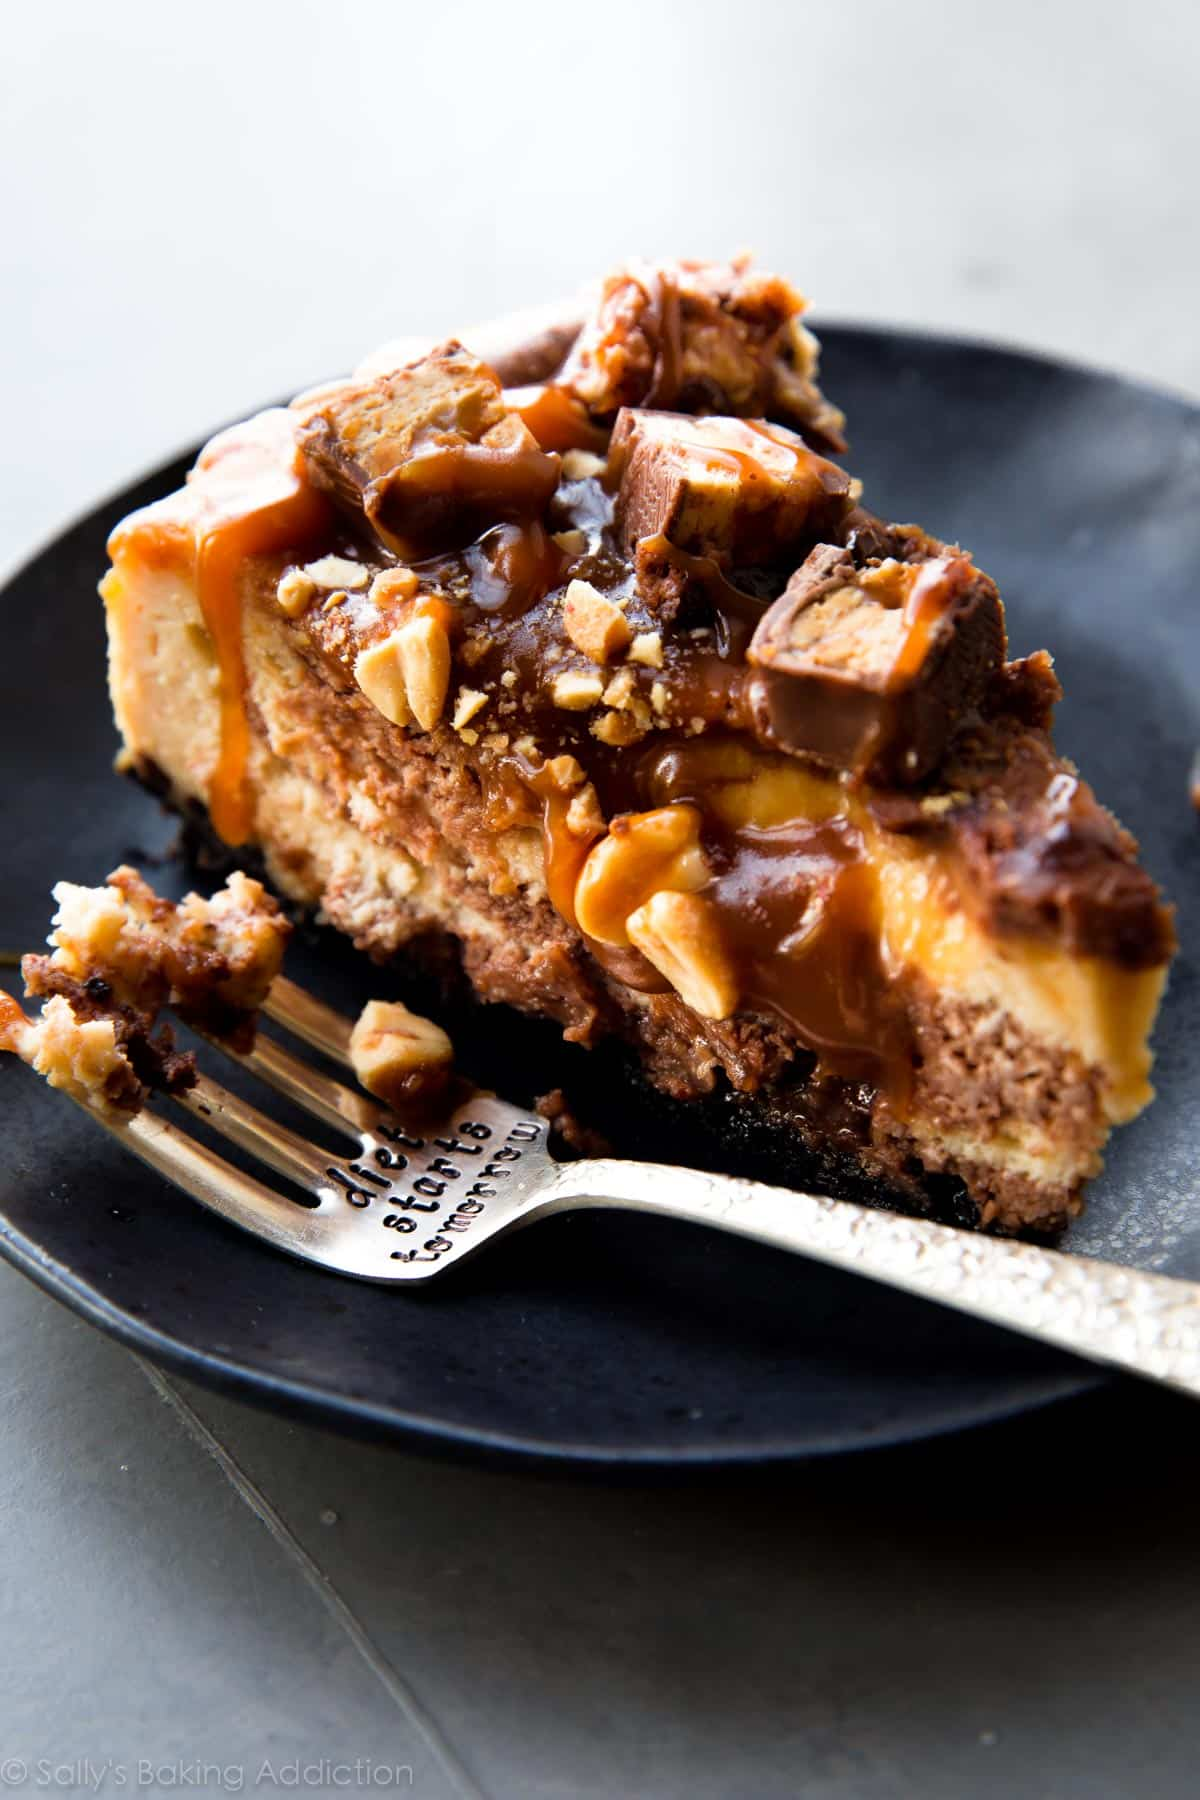 Super decadent and rich Snickers cheesecake with peanut butter and chocolate swirl, salted caramel, peanuts, and Snickers candy bars on top! Recipe on sallysbakingaddiction.com